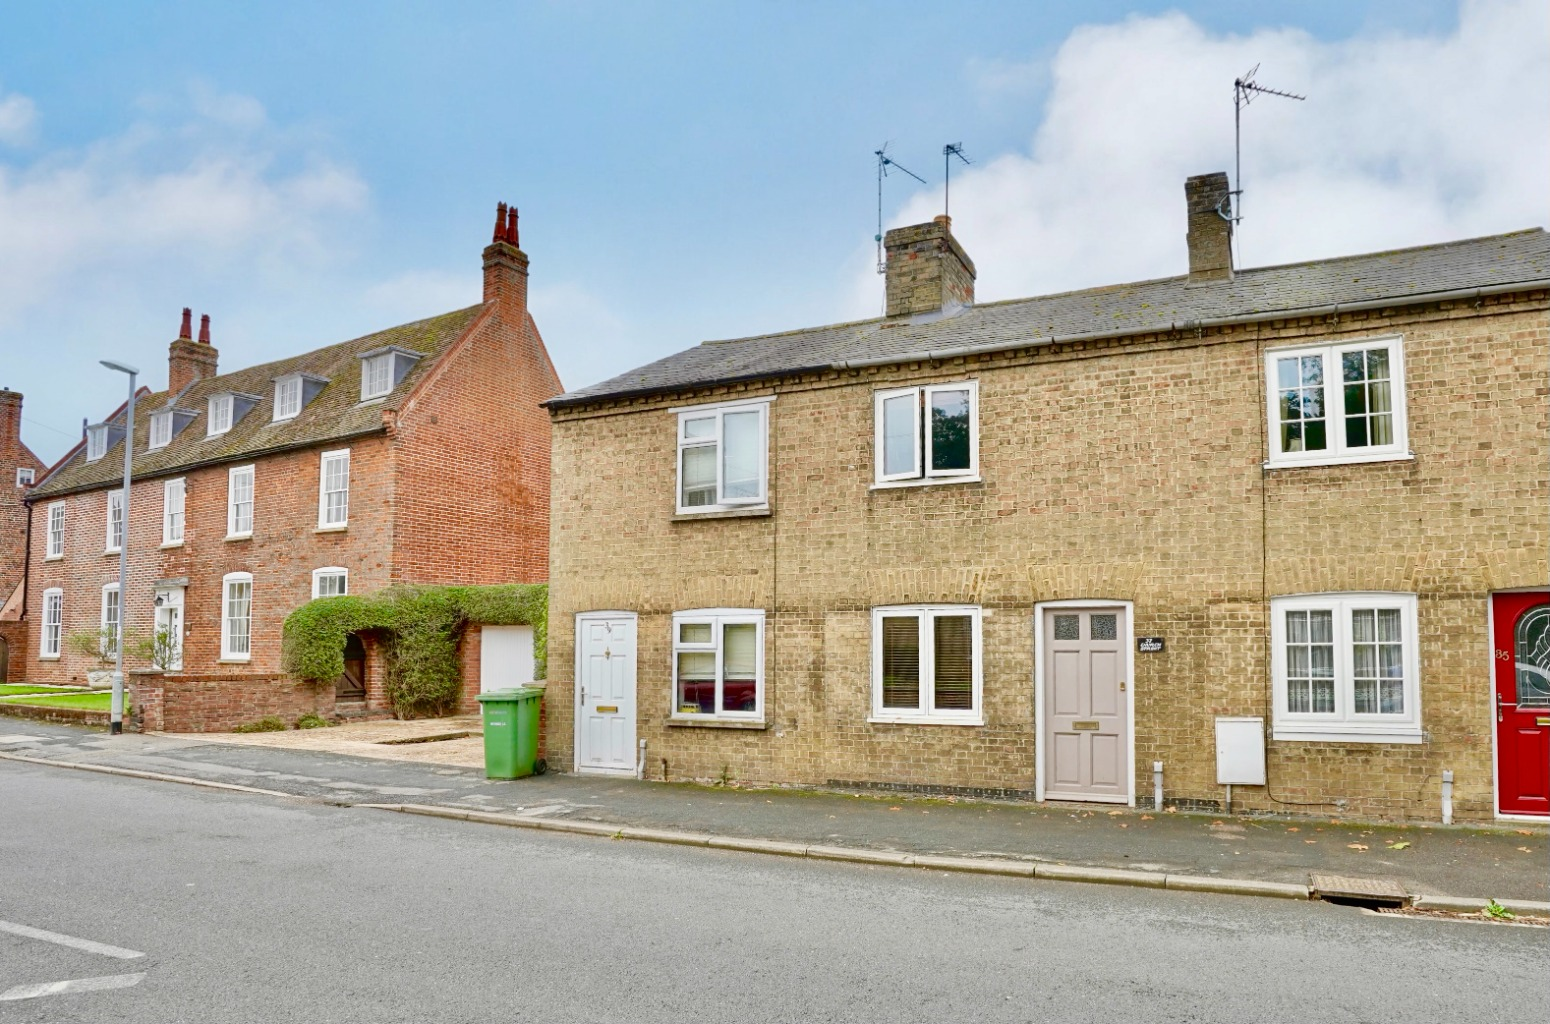 2 bed terraced house for sale in Church Street, St. Neots  - Property Image 1